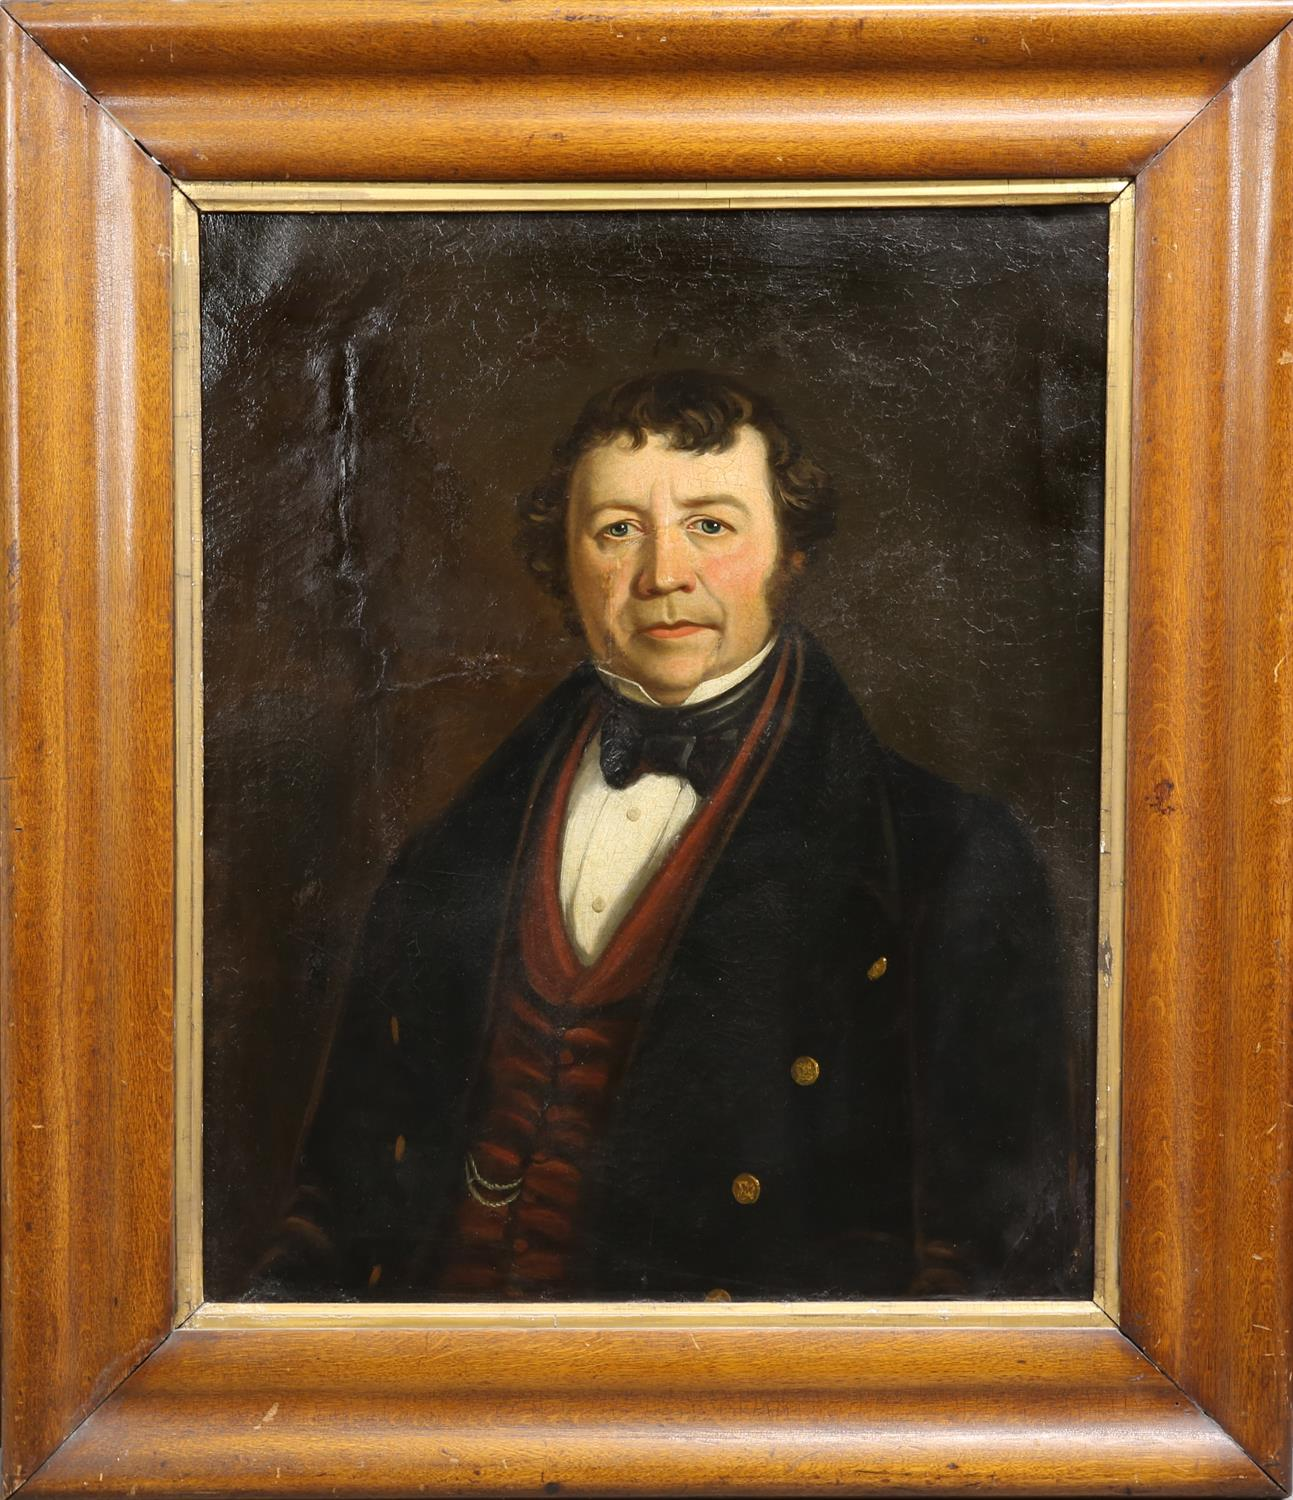 Victorian portrait of a gentleman, oil on canvas, unsigned, framed, 73 x 60.5cm - Image 2 of 3